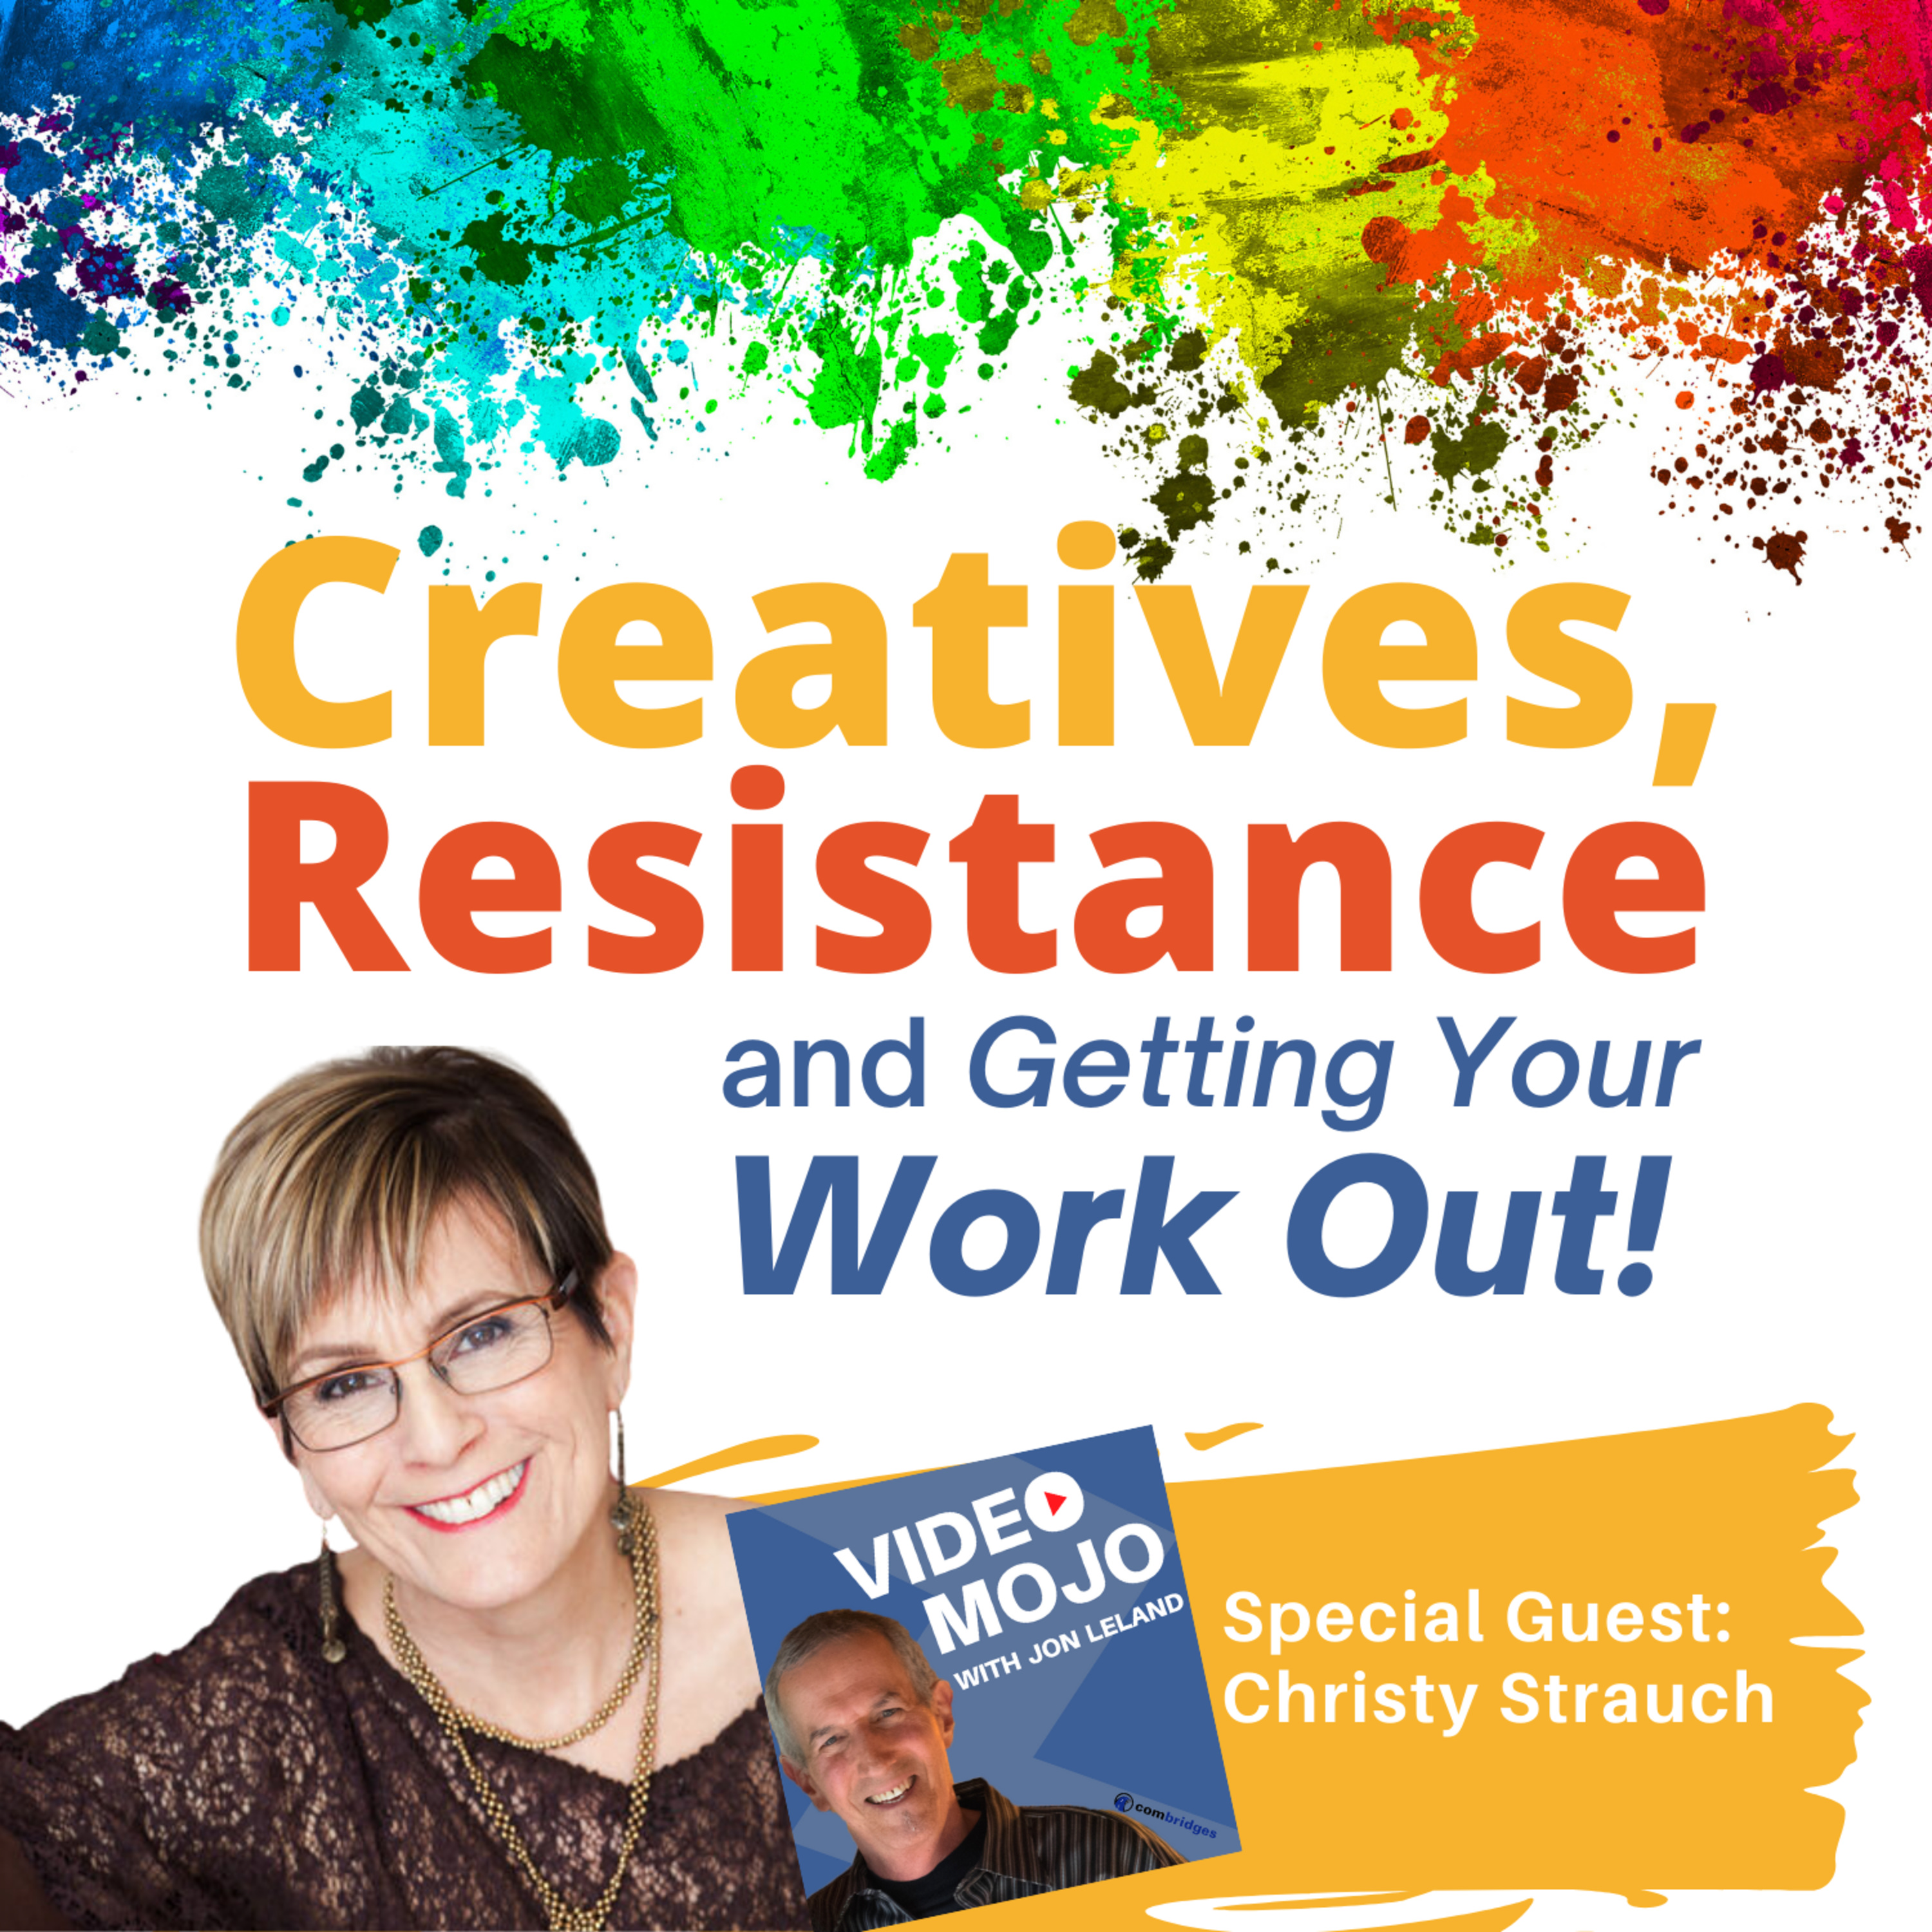 Creatives, Christy Strauch Helps You Overcome Resistance & Get Your Work OUT!